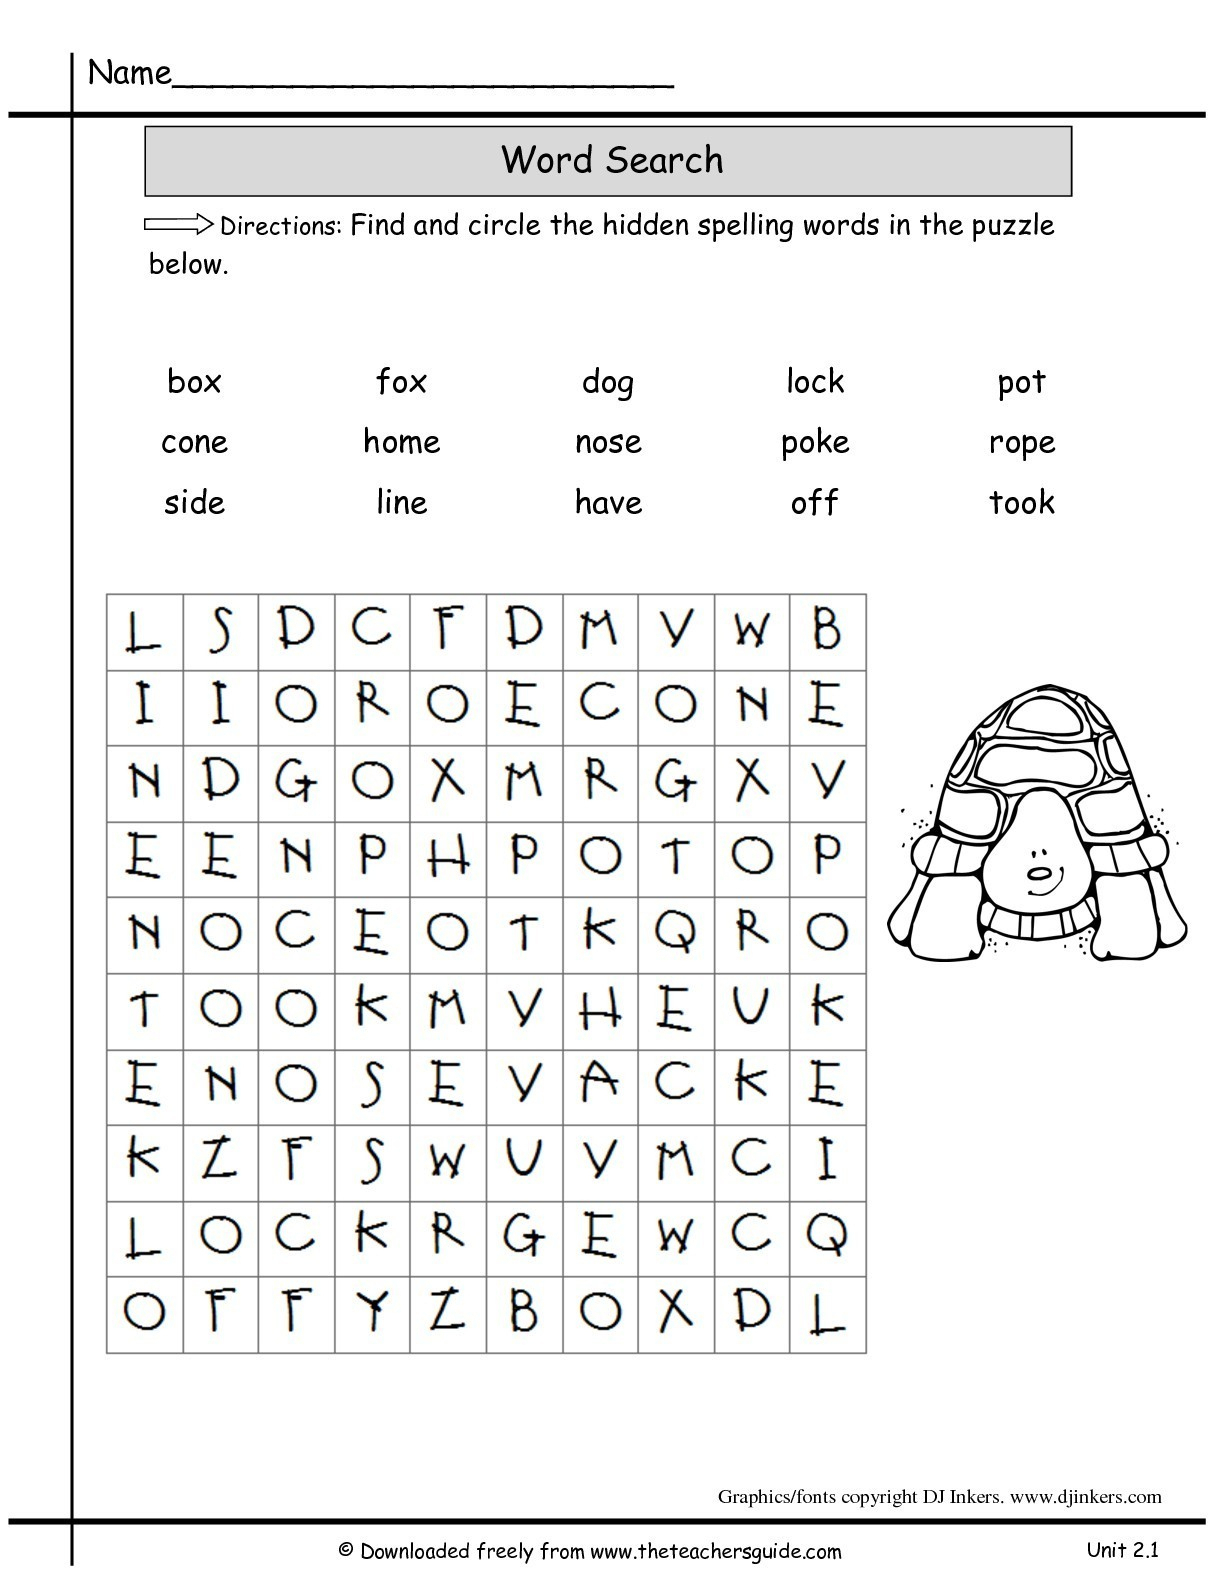 Free Printable Science Worksheets For 2Nd Grade – Worksheet Template | Printable Science Worksheets For 2Nd Grade